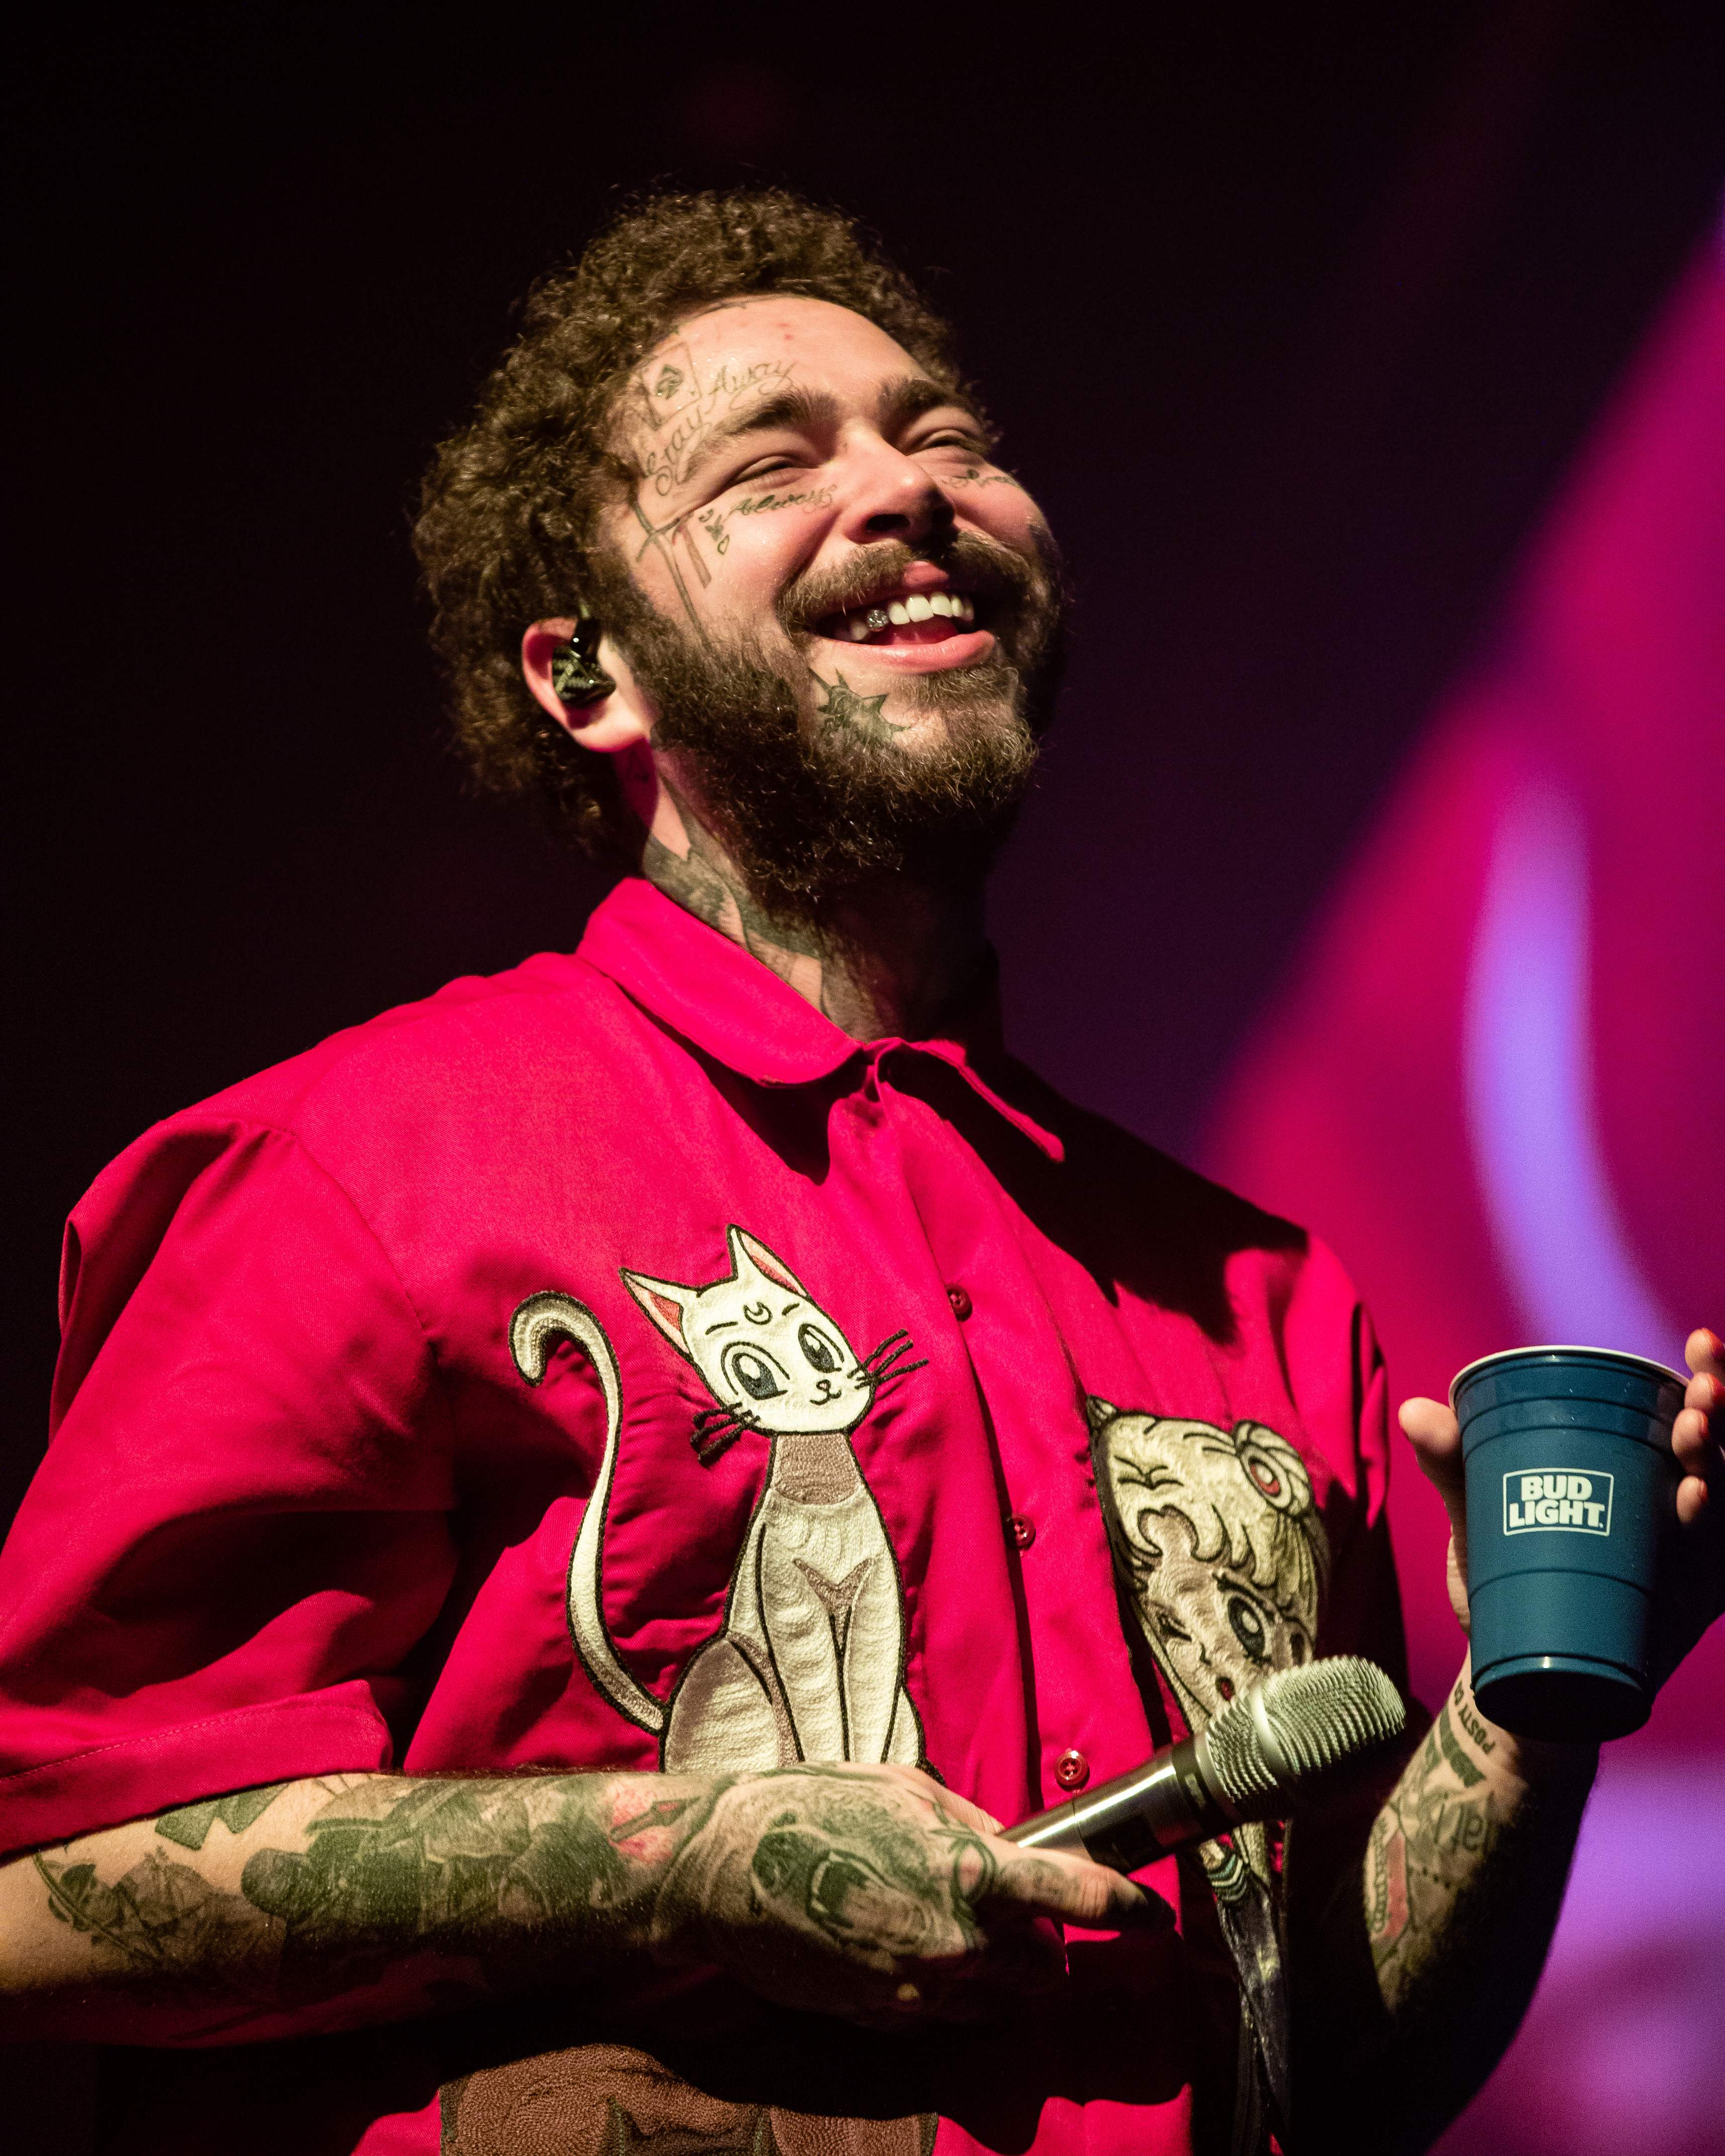 Post Malone expresses gratitude to frontline workers by gifting them sold-out Crocs